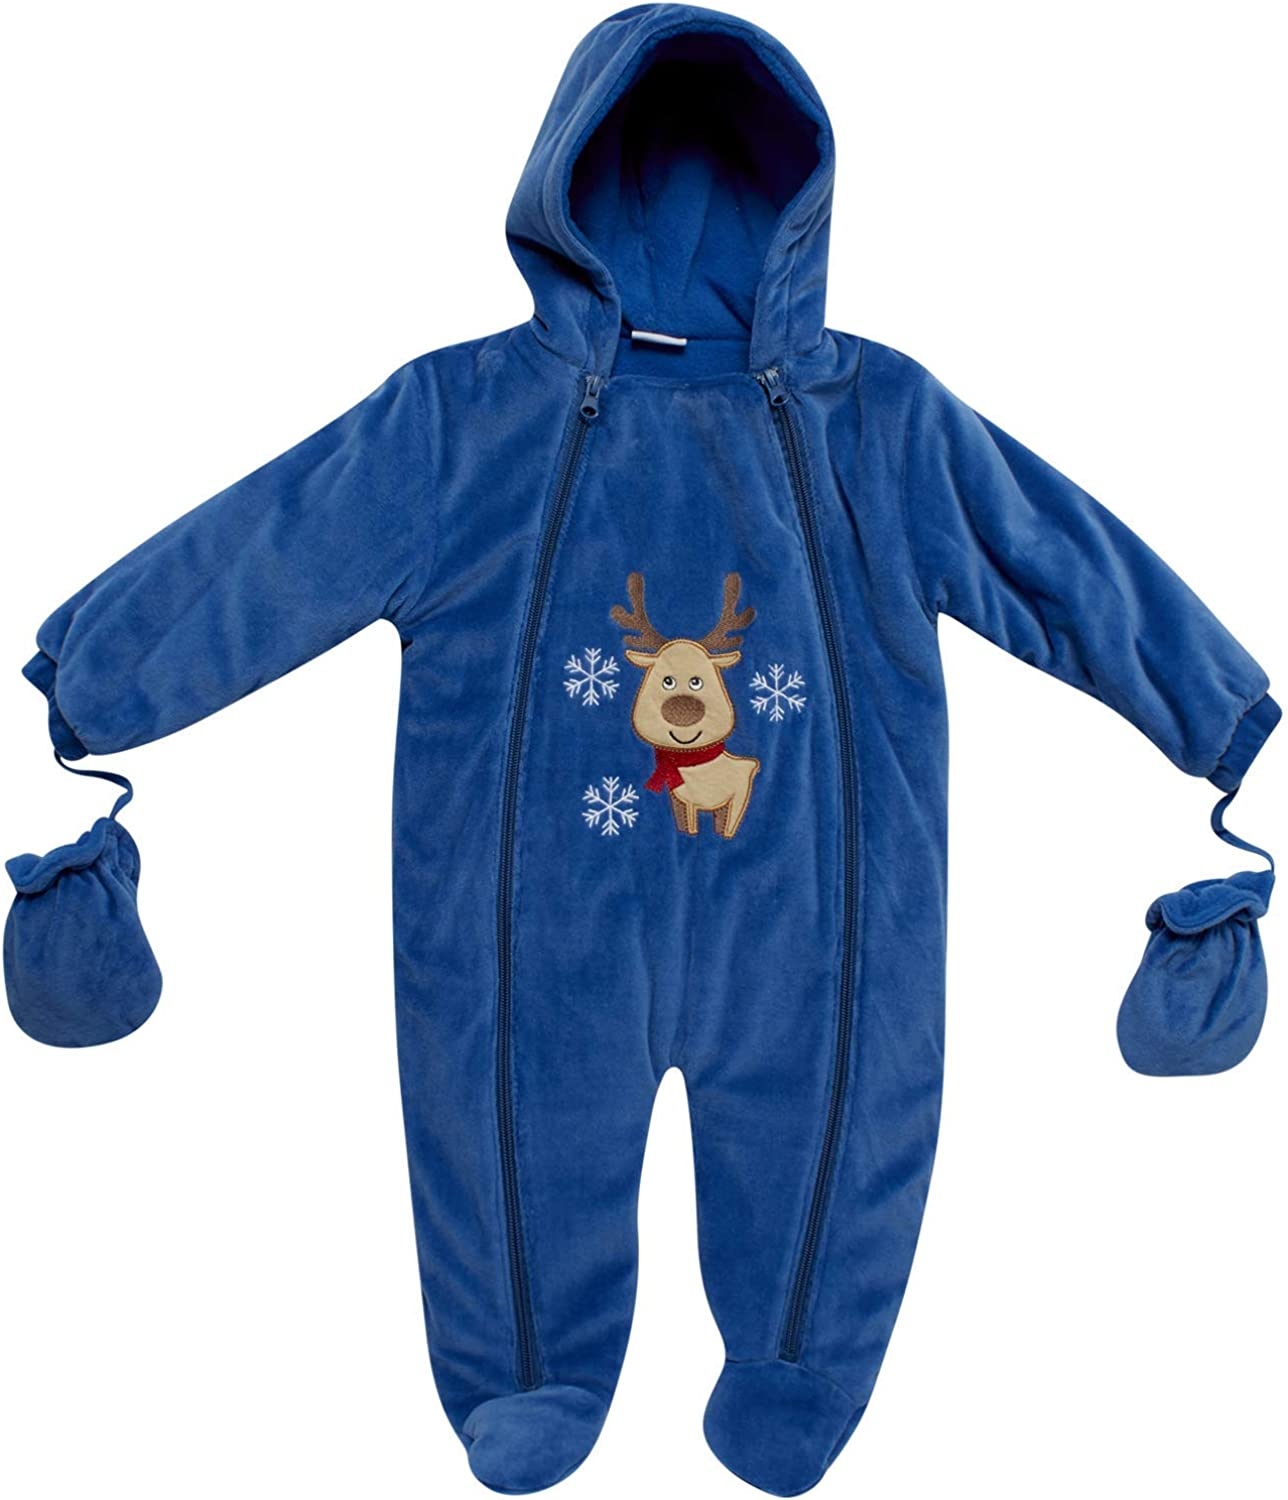 Sweet and Soft Boys Fleece Footed Pram Snowsuit with Mittens (Newborn/Infant)